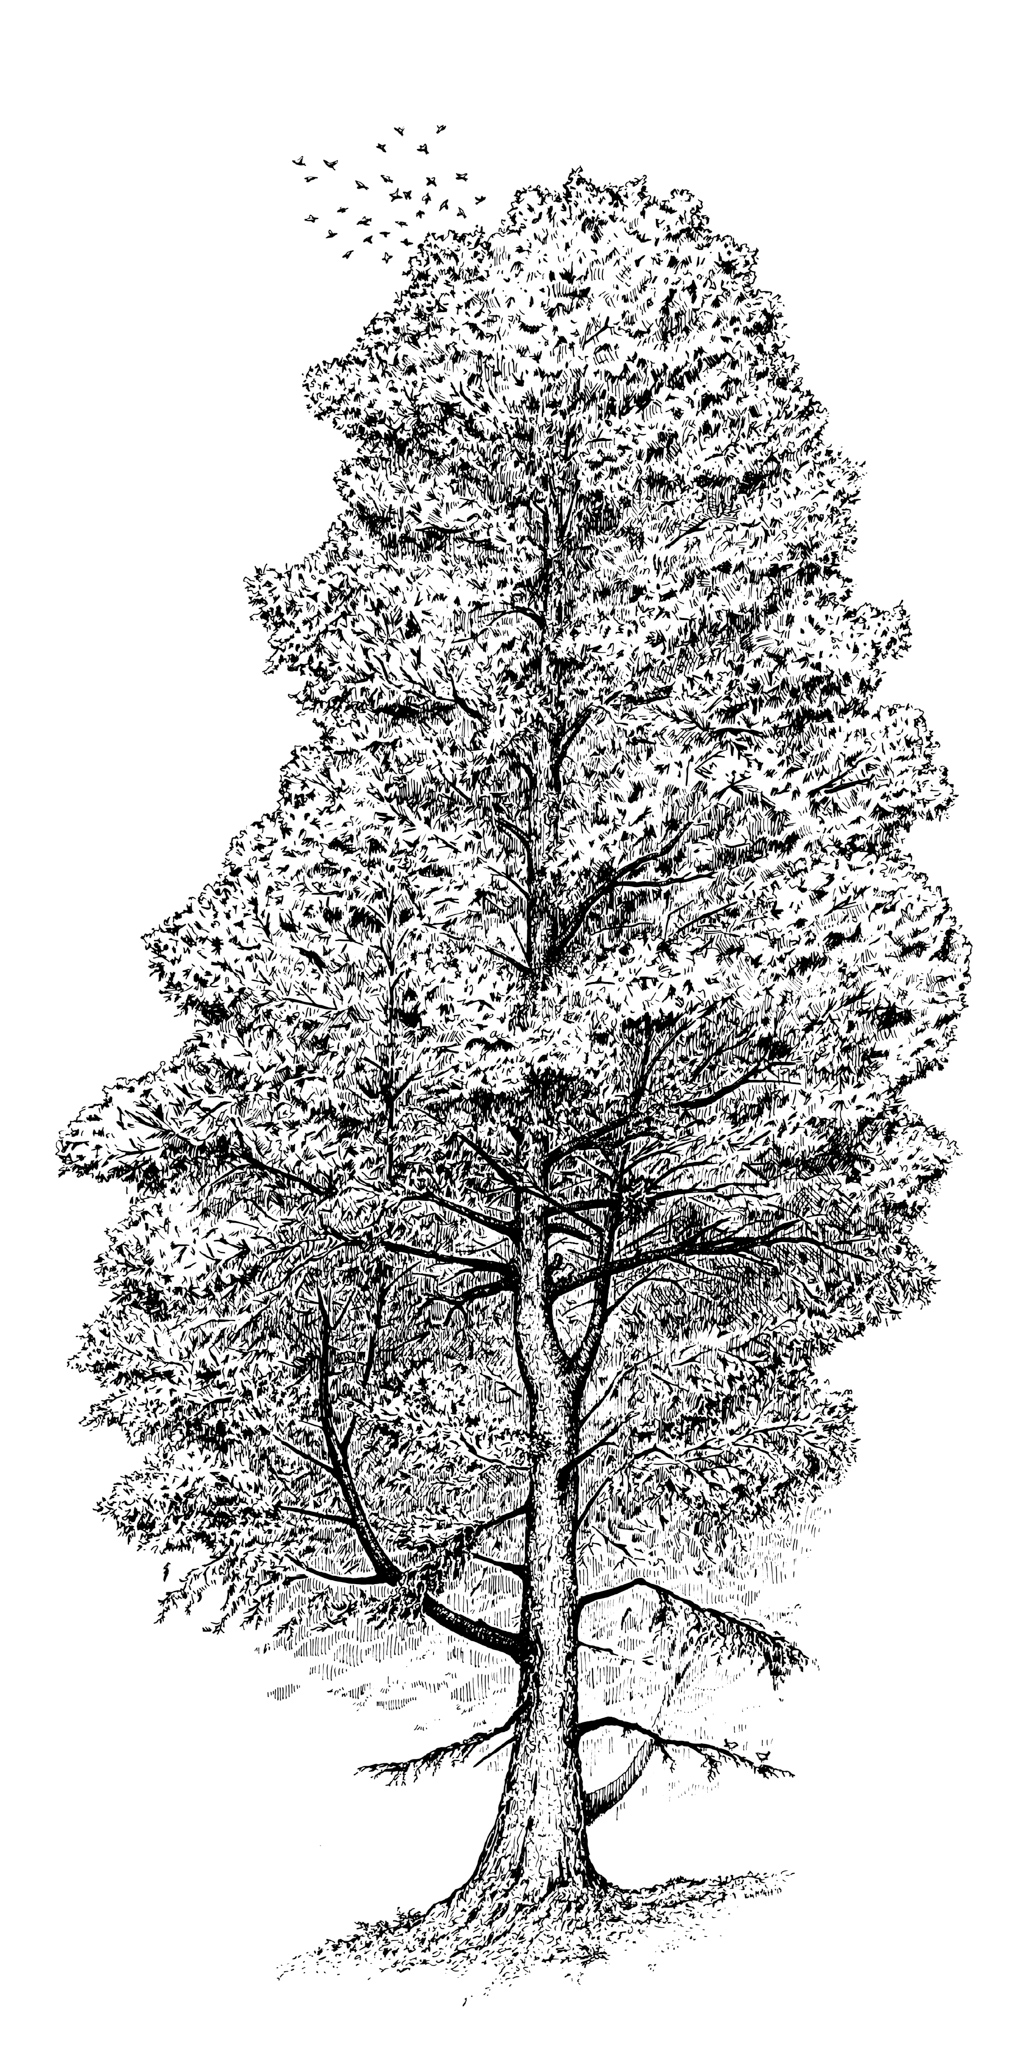 Grandmother Tree Sitka Spruce Picea sitchensis drawing